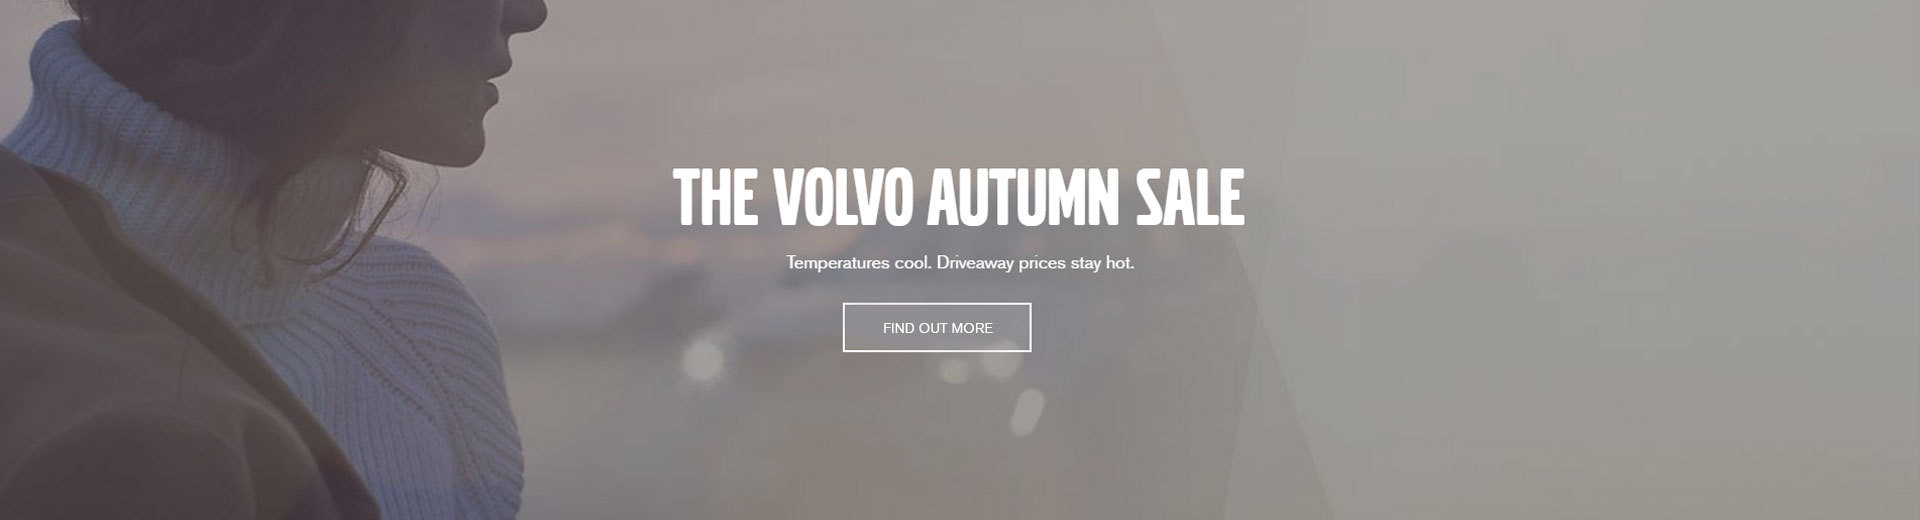 The Volvo Autumn Sale - Temperatures Cool, Driveaway Prices Still Hot